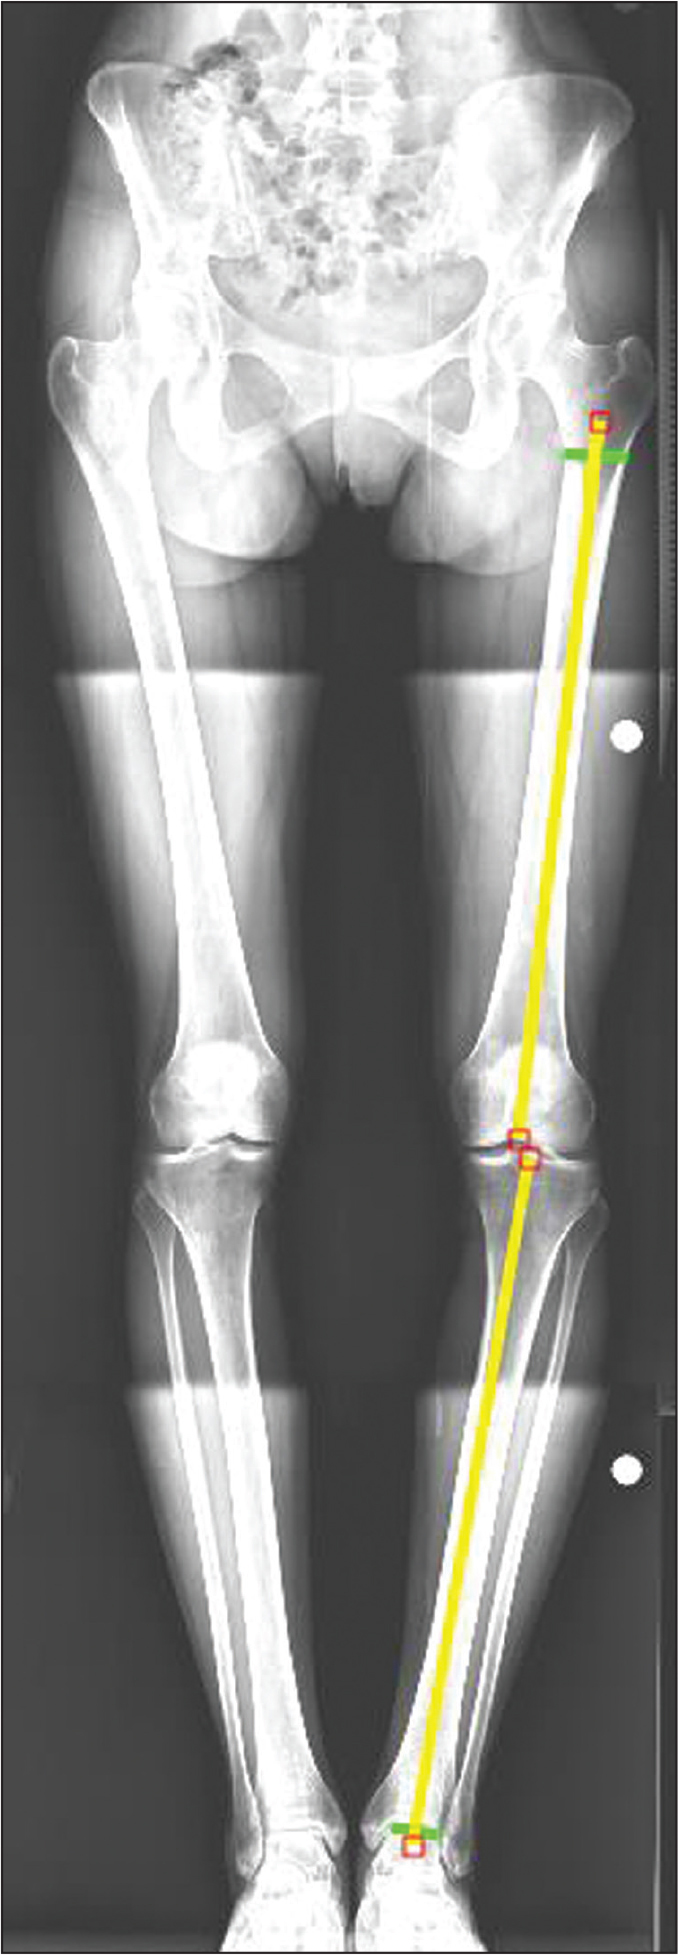 Preoperative anteroposterior orthoroentgenograph measurement of the lateral tibiofemoral angle, defined as the lateral angle between the anatomic axes of the tibia and femur. The lines on the leg on the right represent anatomic axes of the femur and tibia.